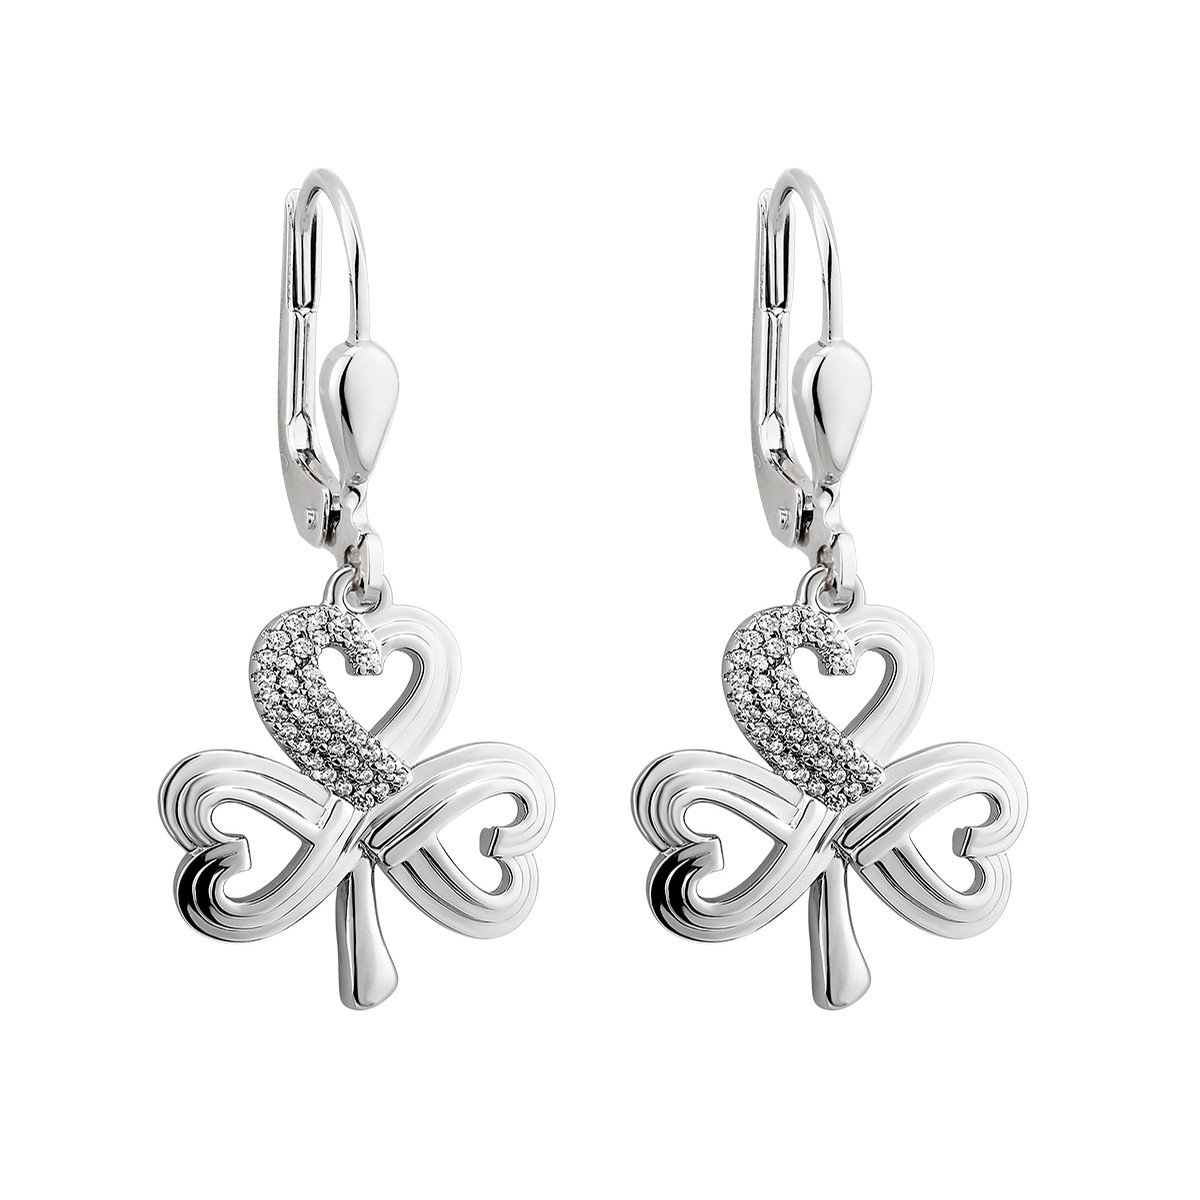 Shamrock Etched Silver Earrings